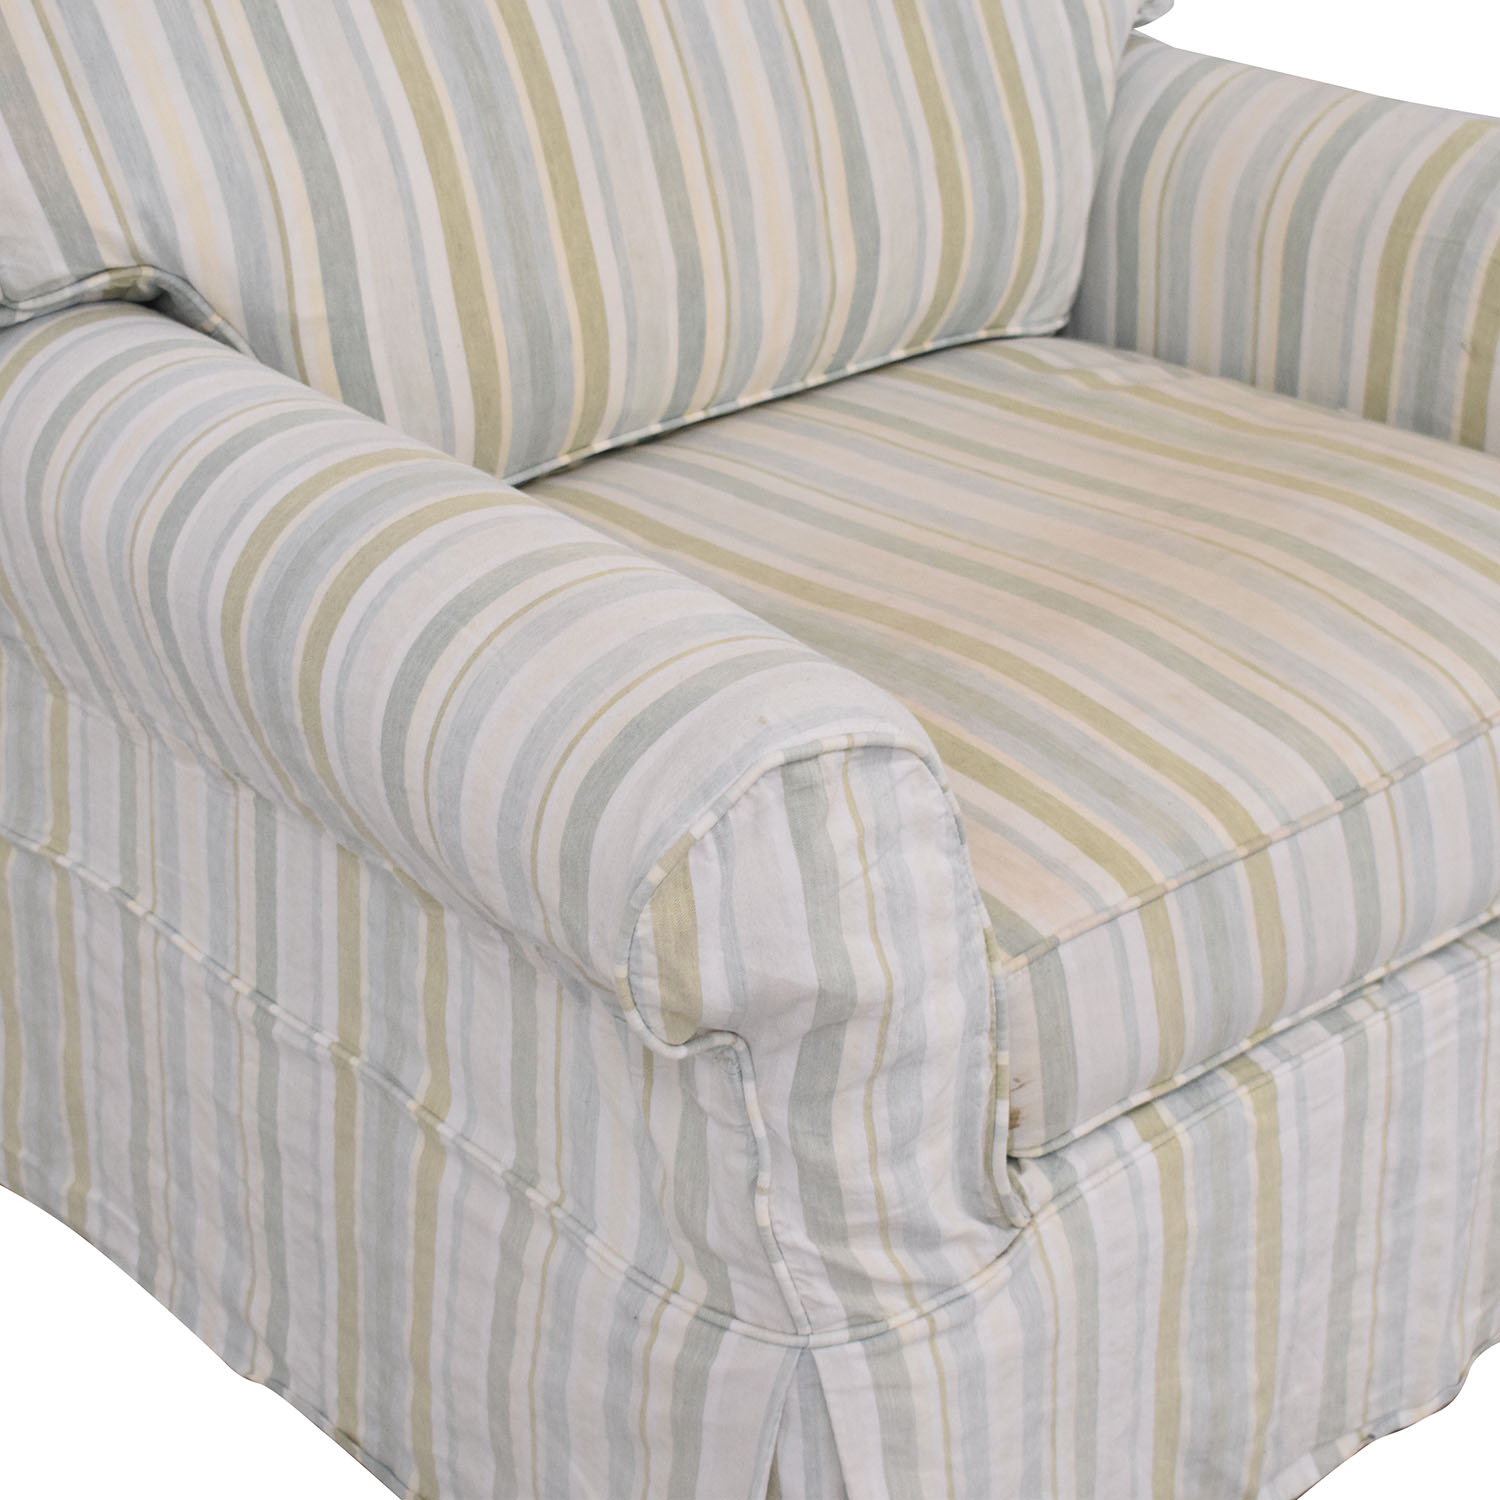 Crate & Barrel Crate & Barrel Slipcovered Accent Chair multicolored